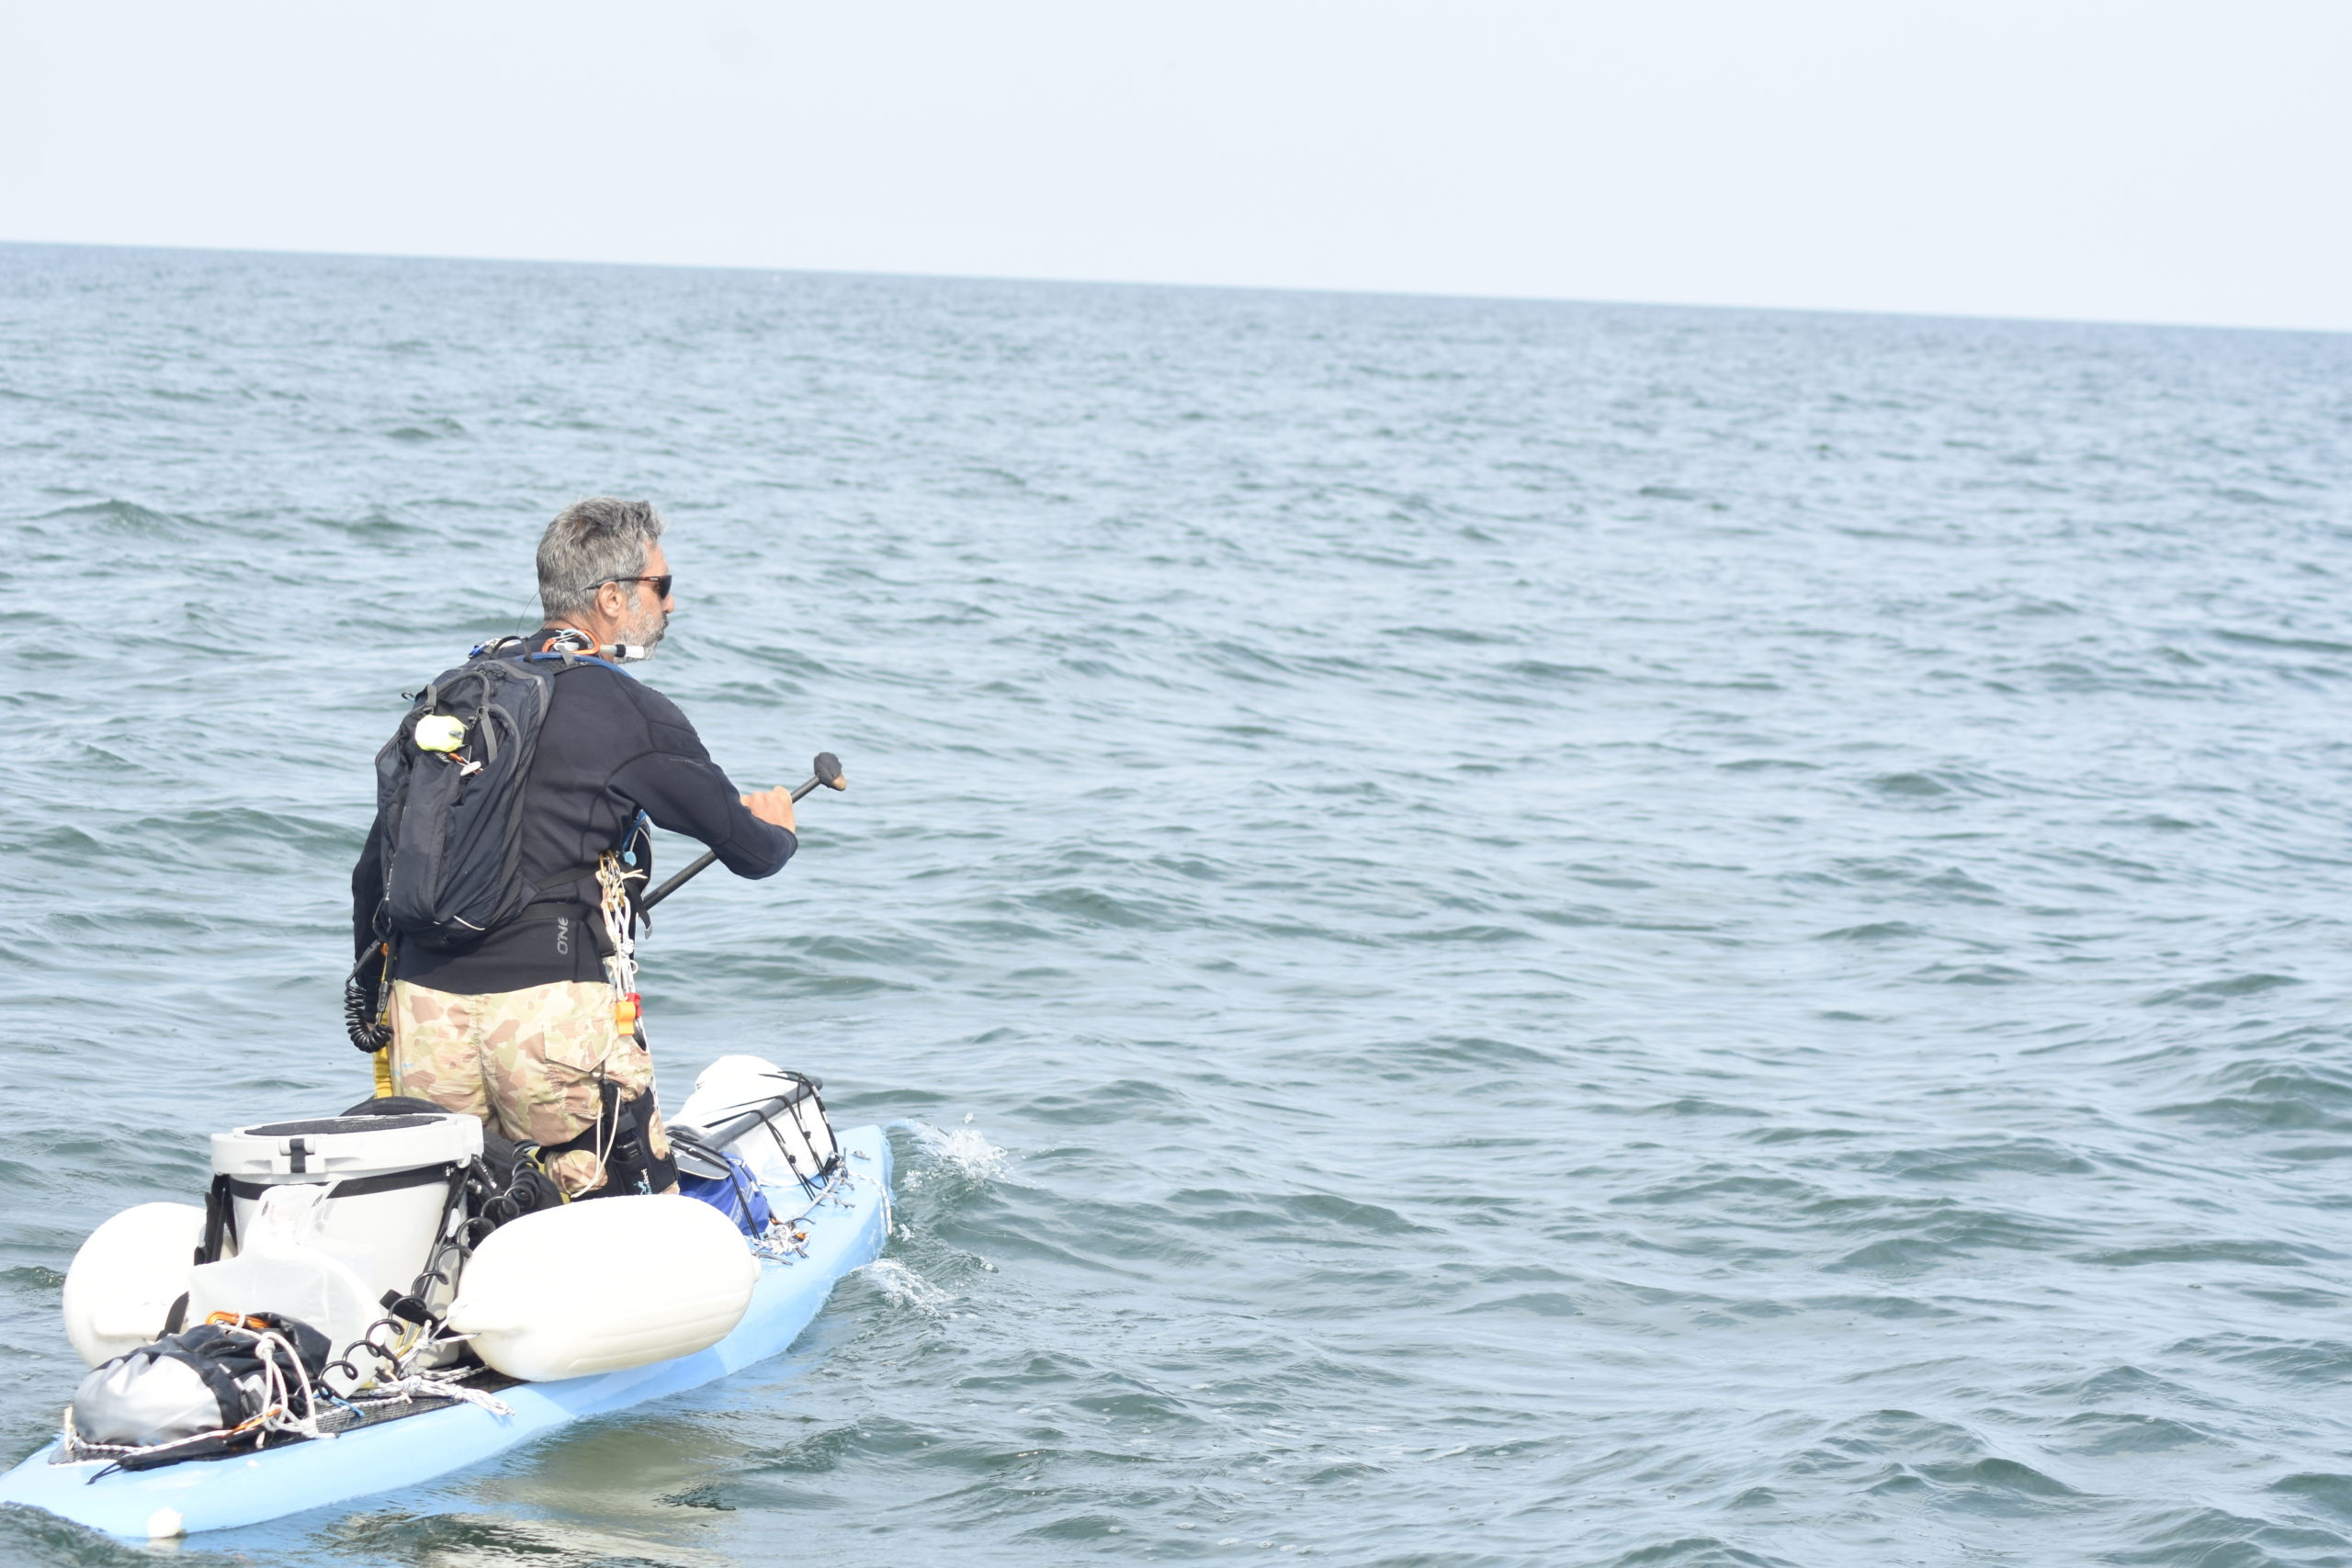 Adam Nagler paddling in the ocean just off the shores of Southampton.